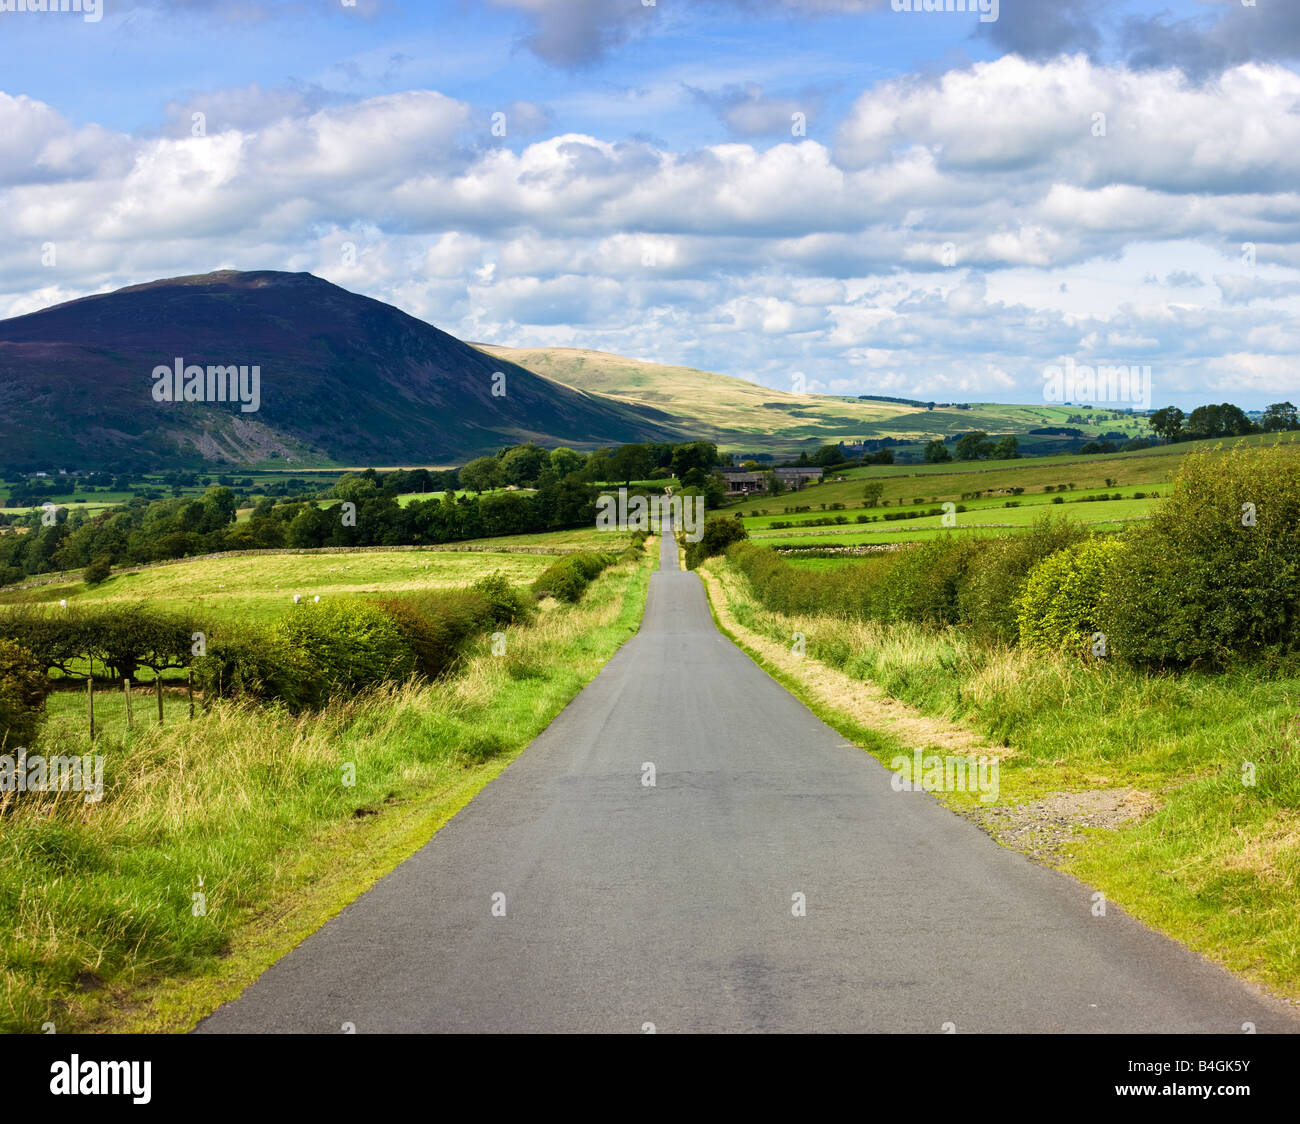 Country road, in the English Lake District, Cumbria, England, UK - Stock Image